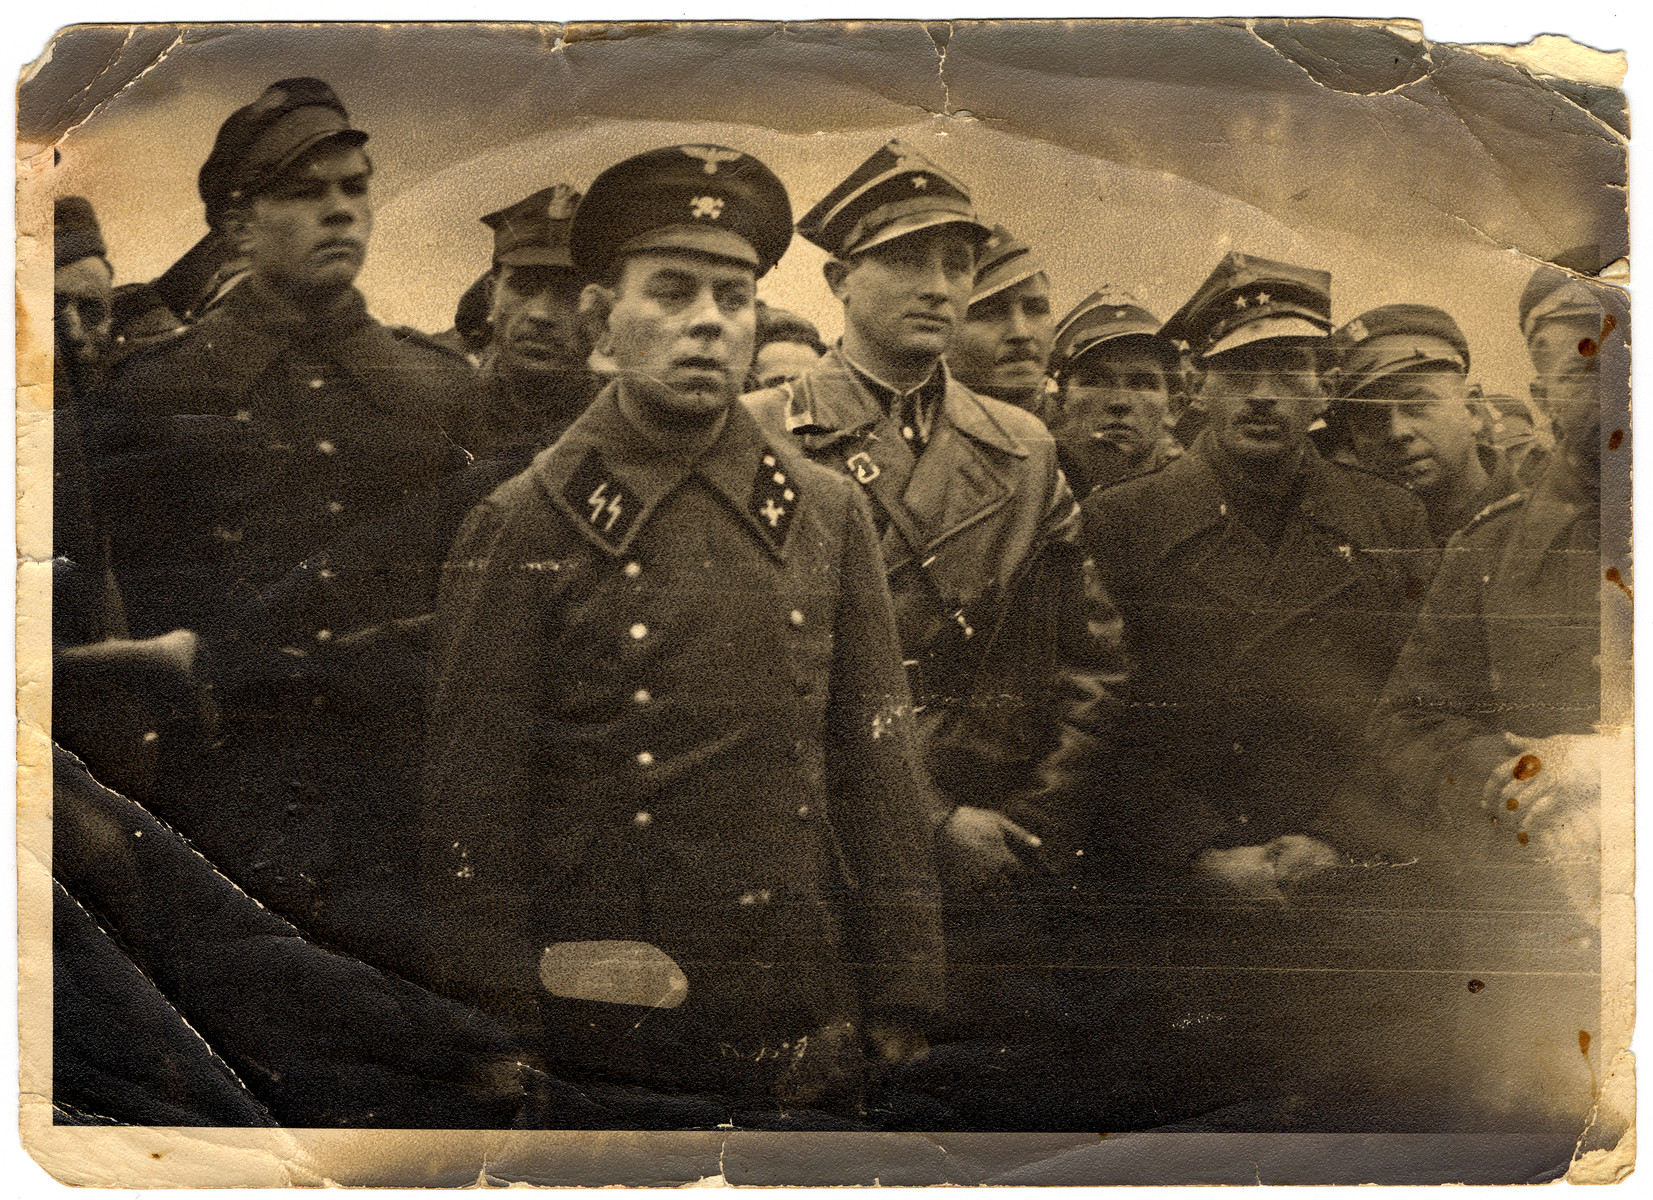 Chaim Faber (cousin of the donor) and a Polish Jewish officer in the Red Army participates in the hanging of a camp guard identified as Hoffman.